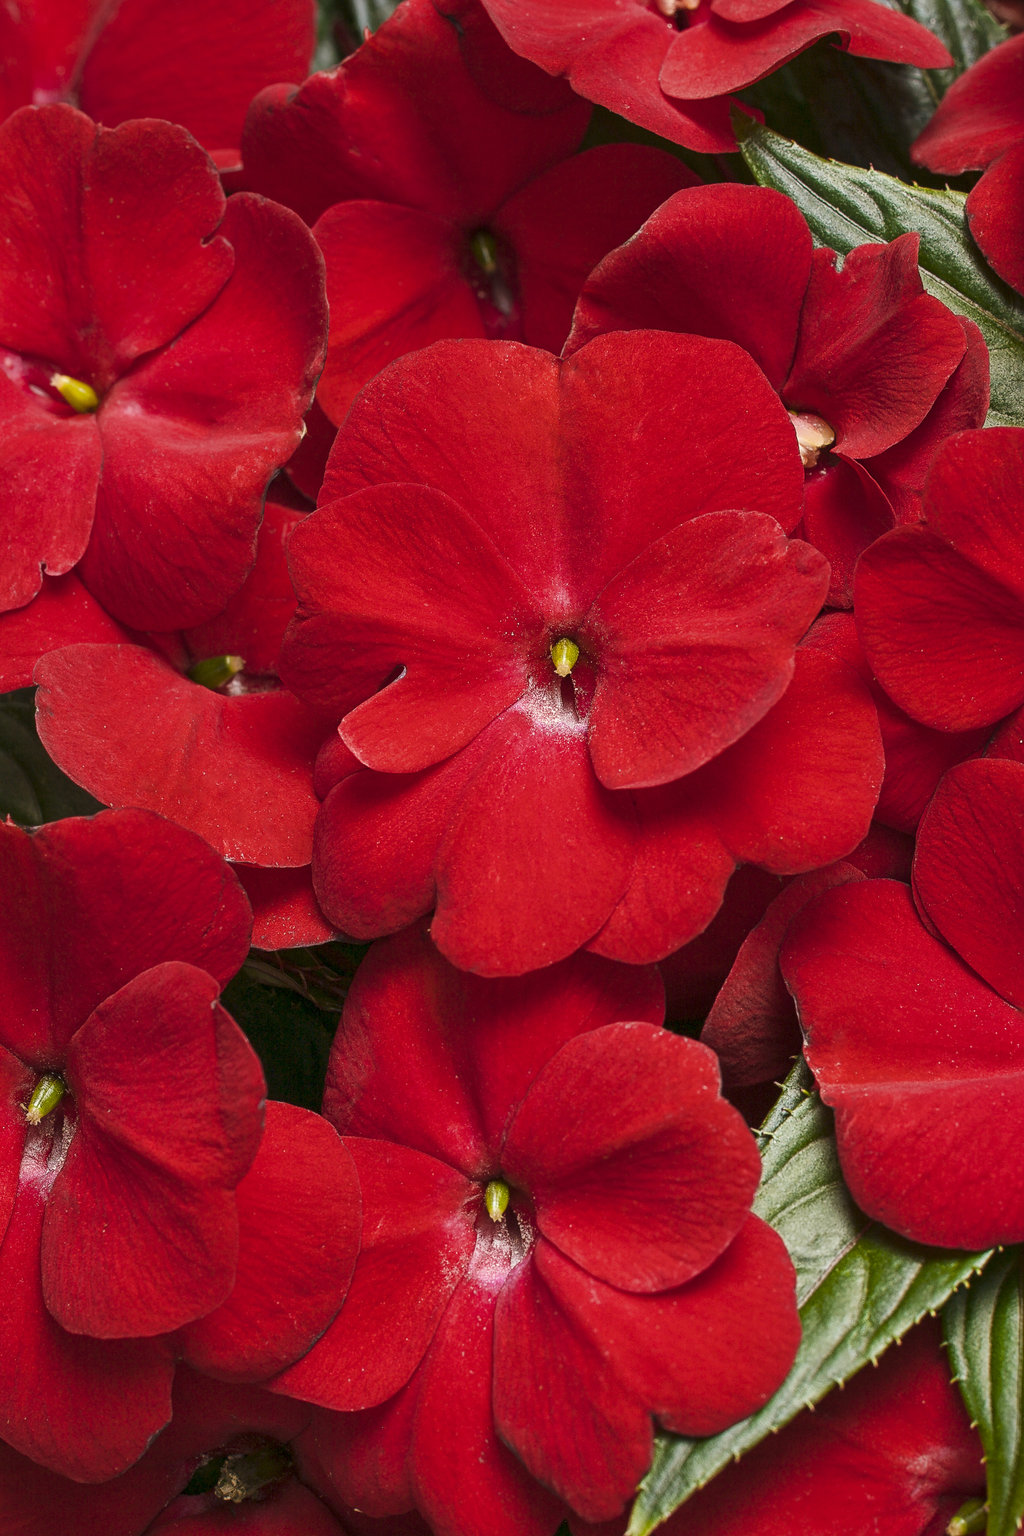 Infinity red new guinea impatiens impatiens hawkeri New guinea impatiens